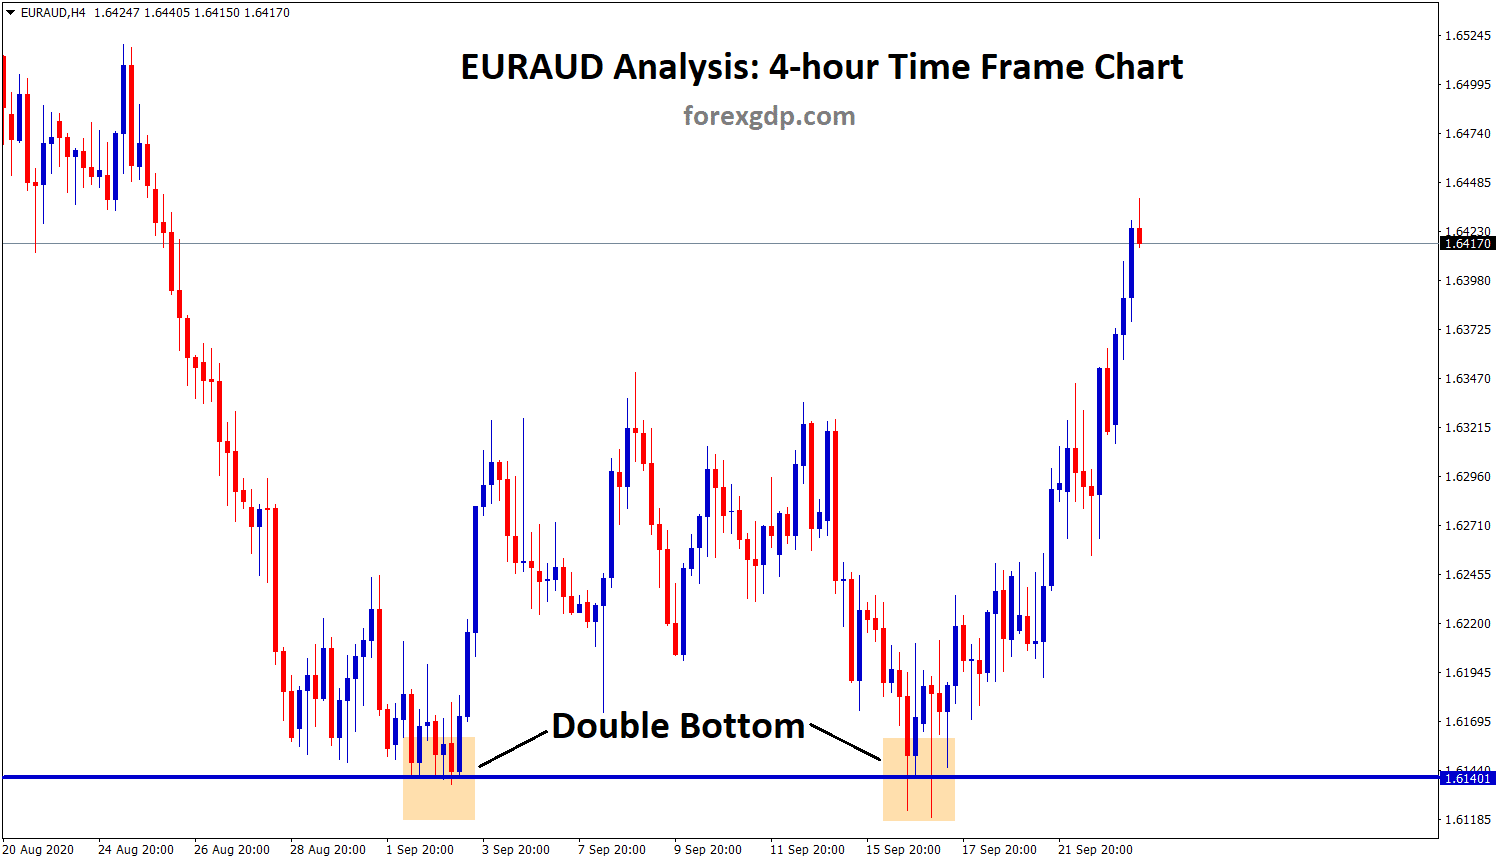 euraud double bottom pattern in h4